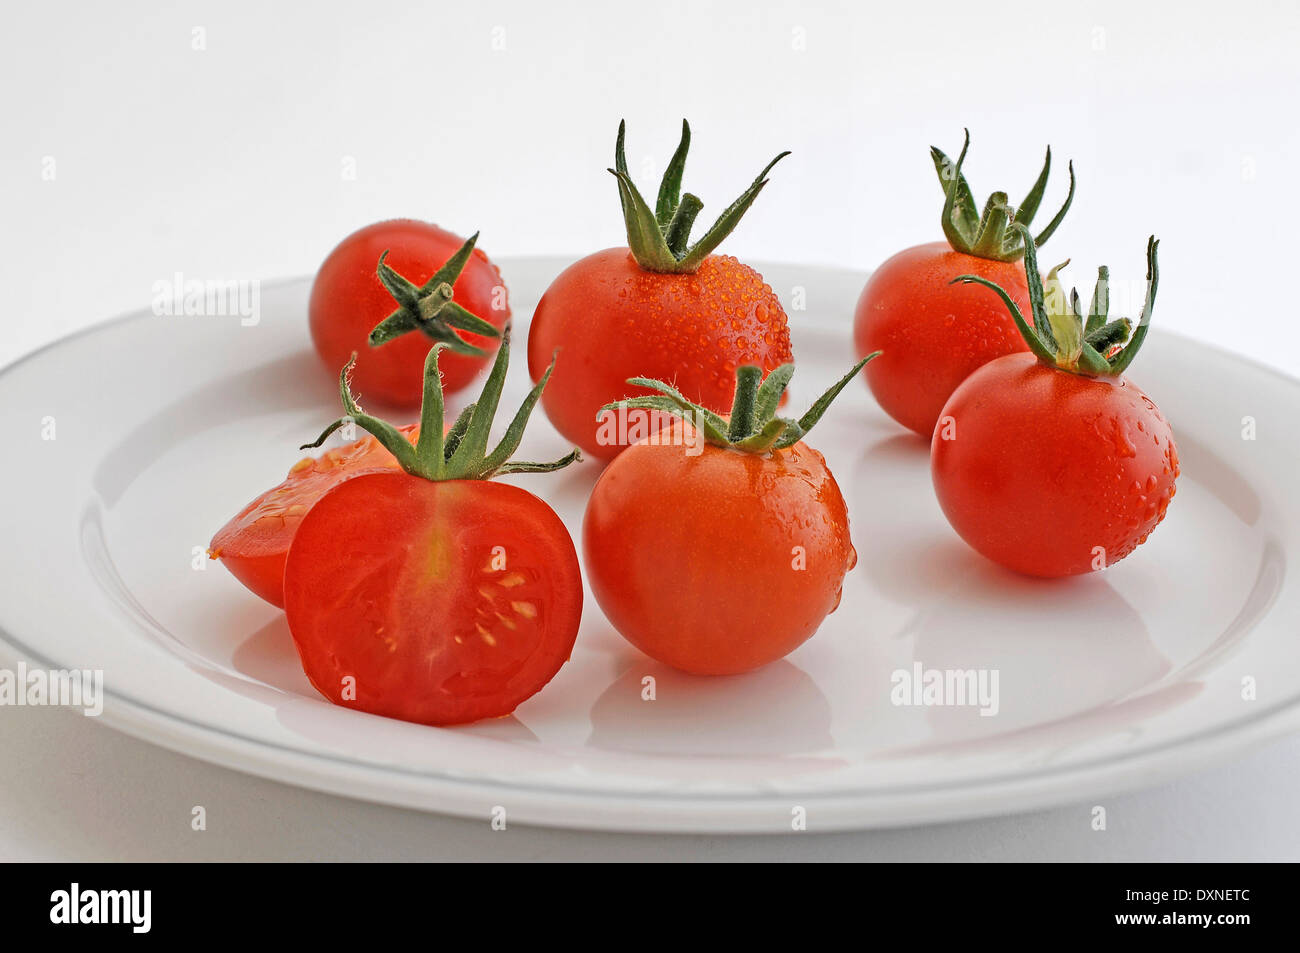 tomato on a white plate - Stock Image